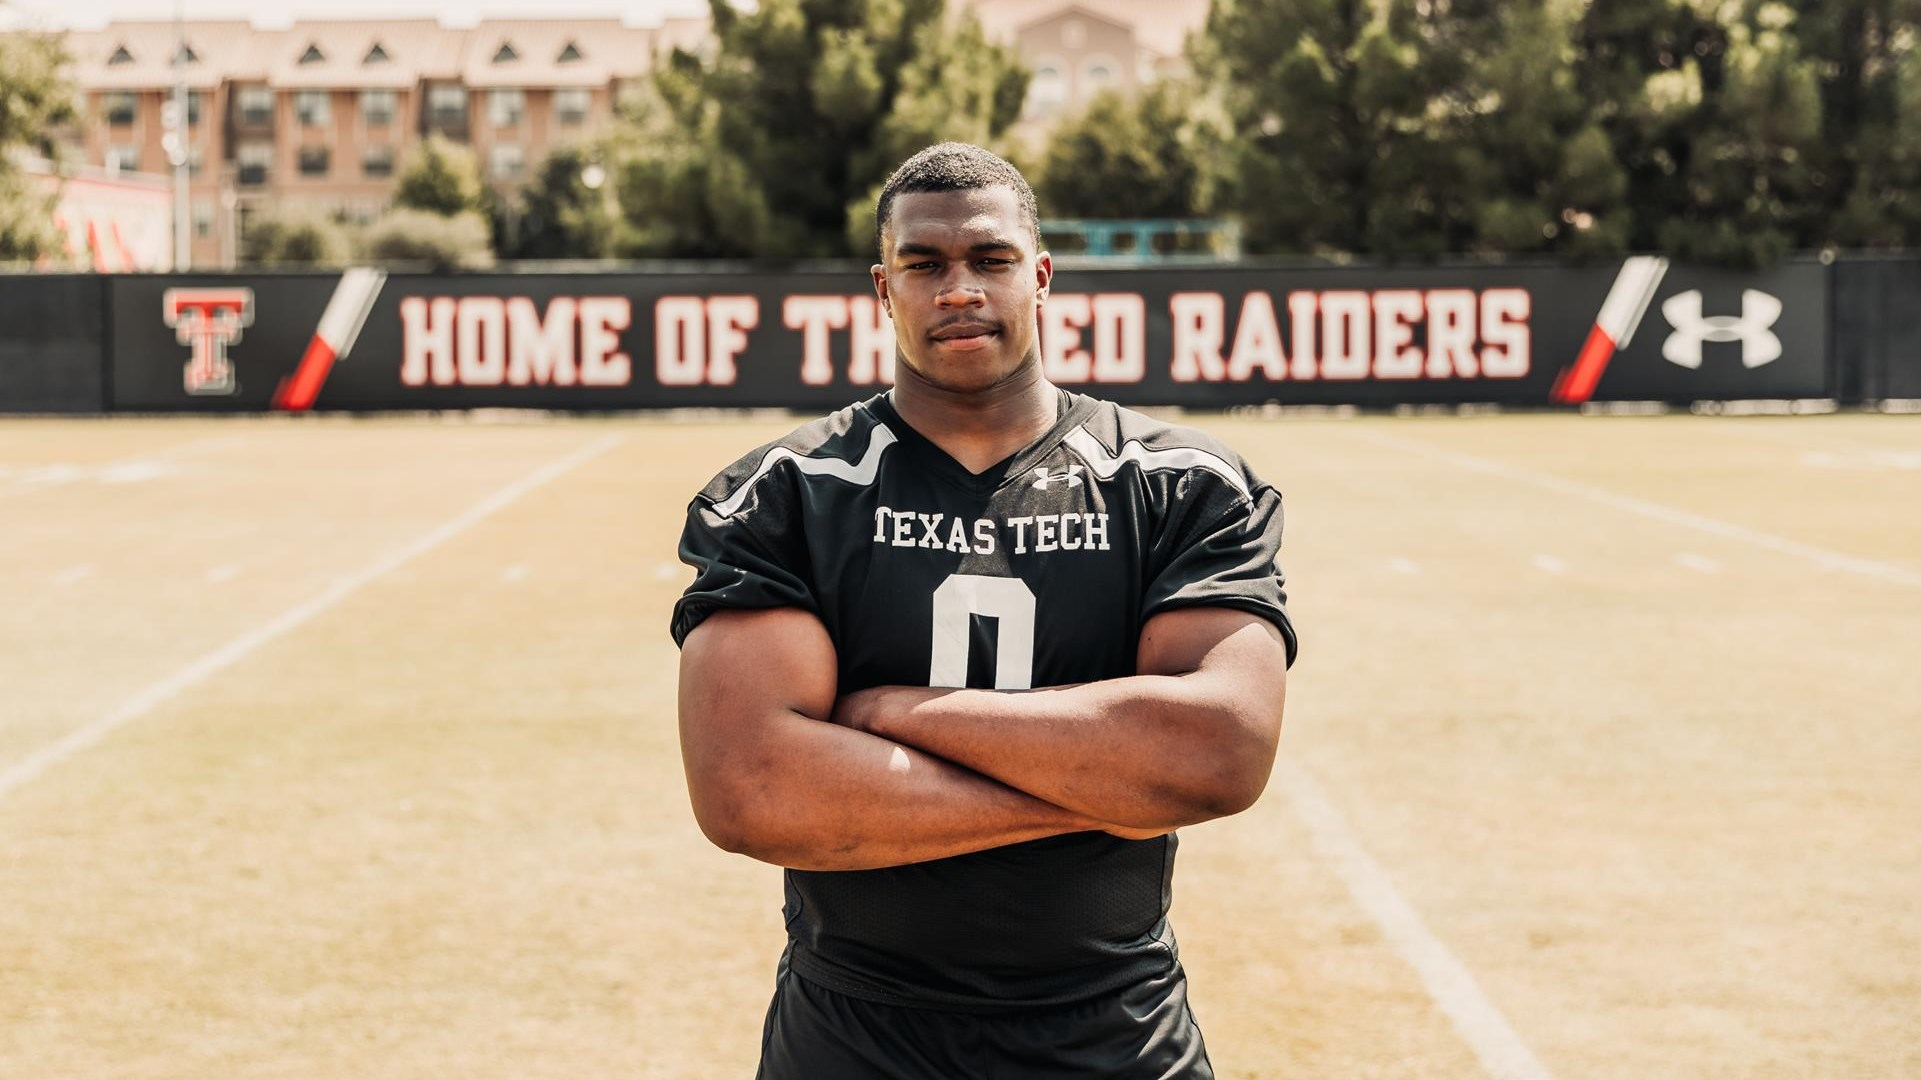 Wilson Joins Red Raiders At Start Of Fall Semester Texas Tech Red Raiders